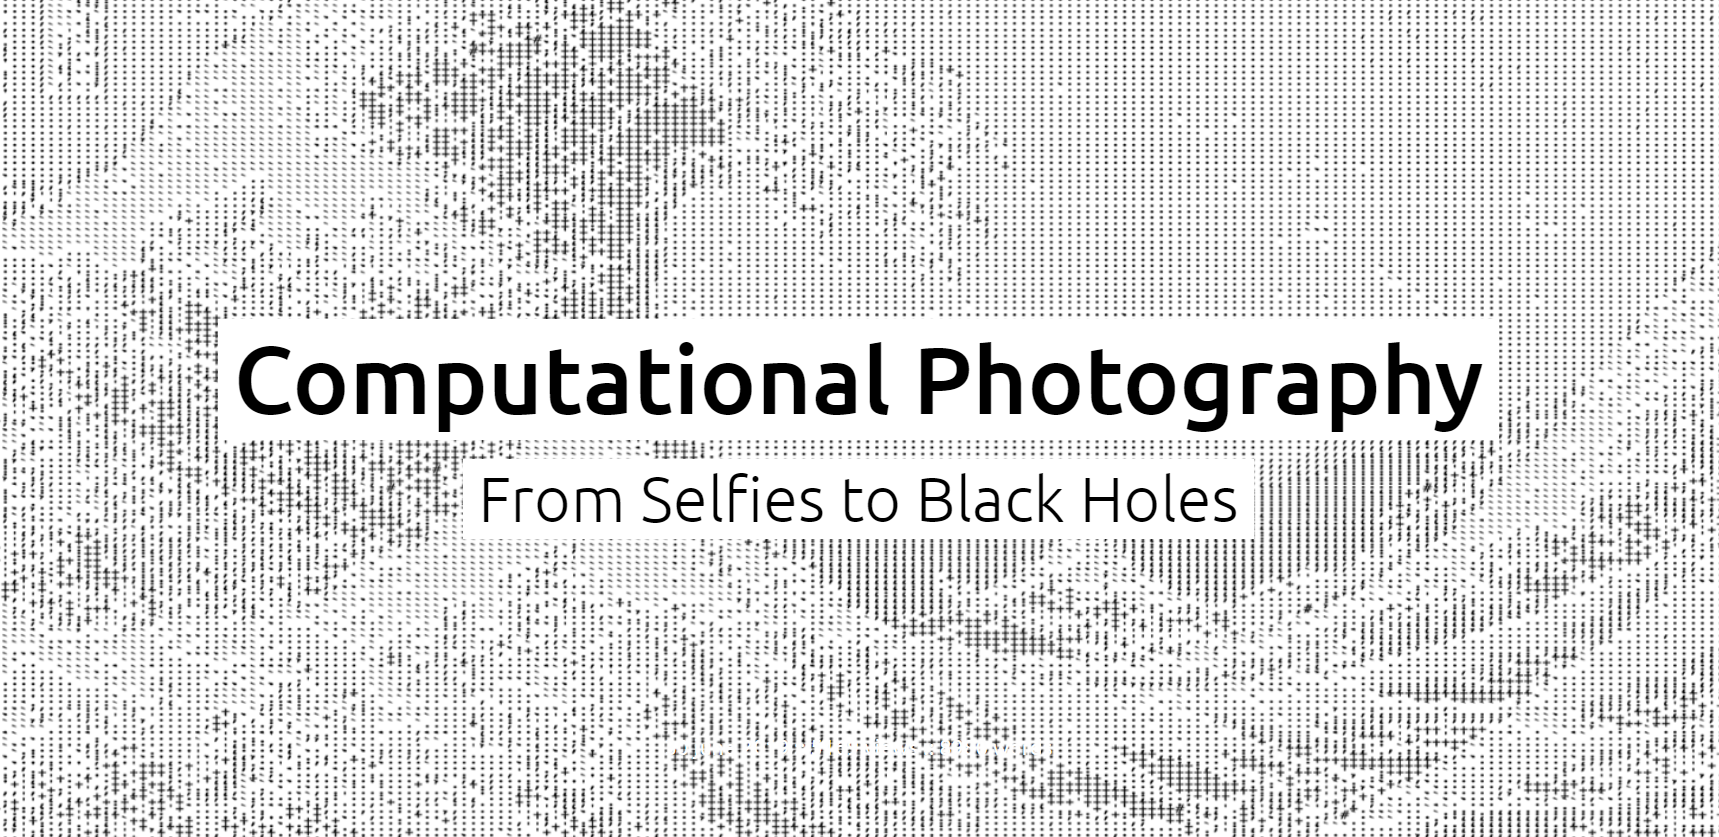 Computational Photography From Selfies to Black Holes